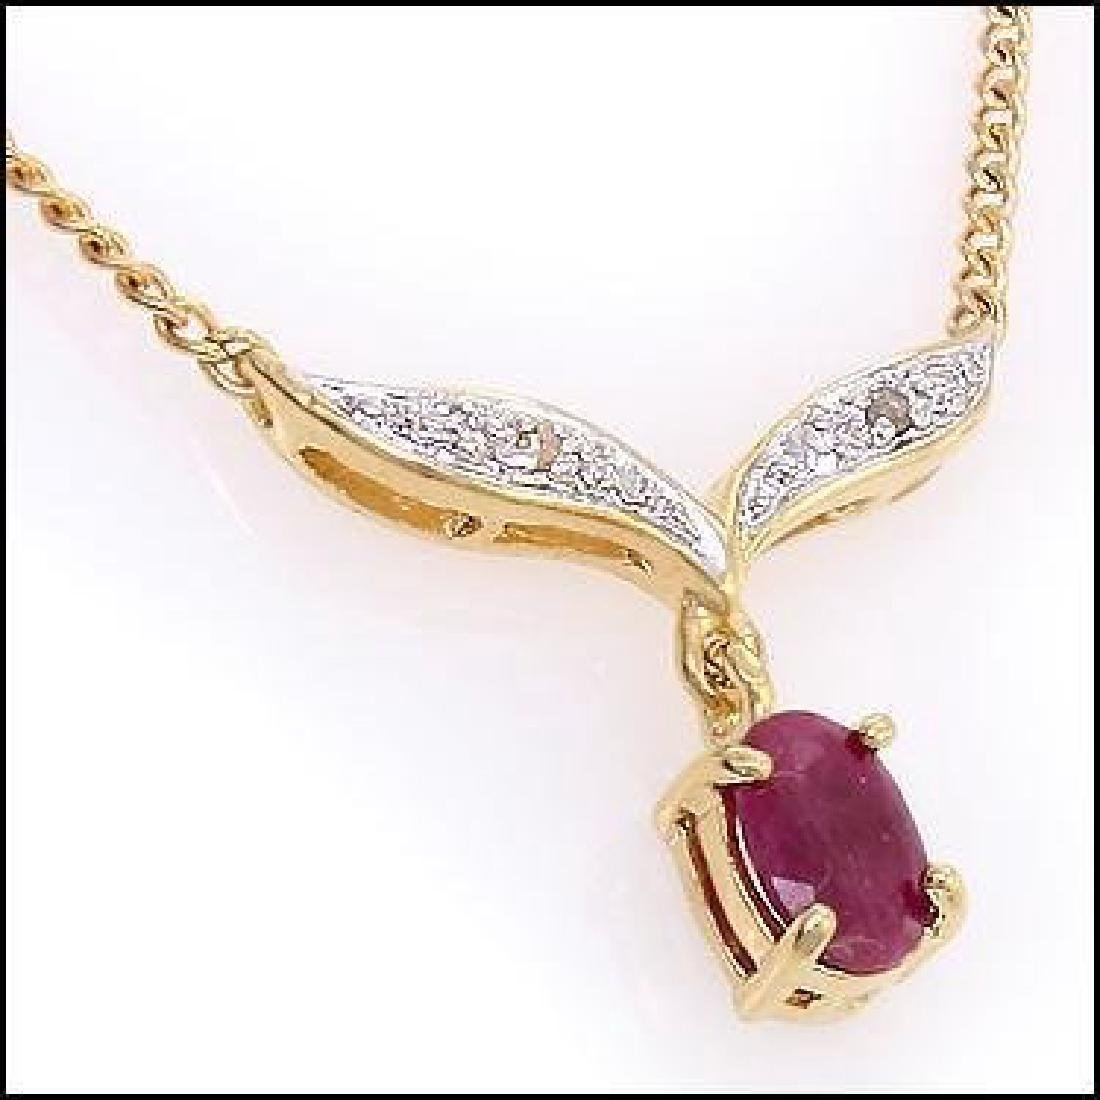 2.91 CT Ruby & Diamond Designer Necklace $855